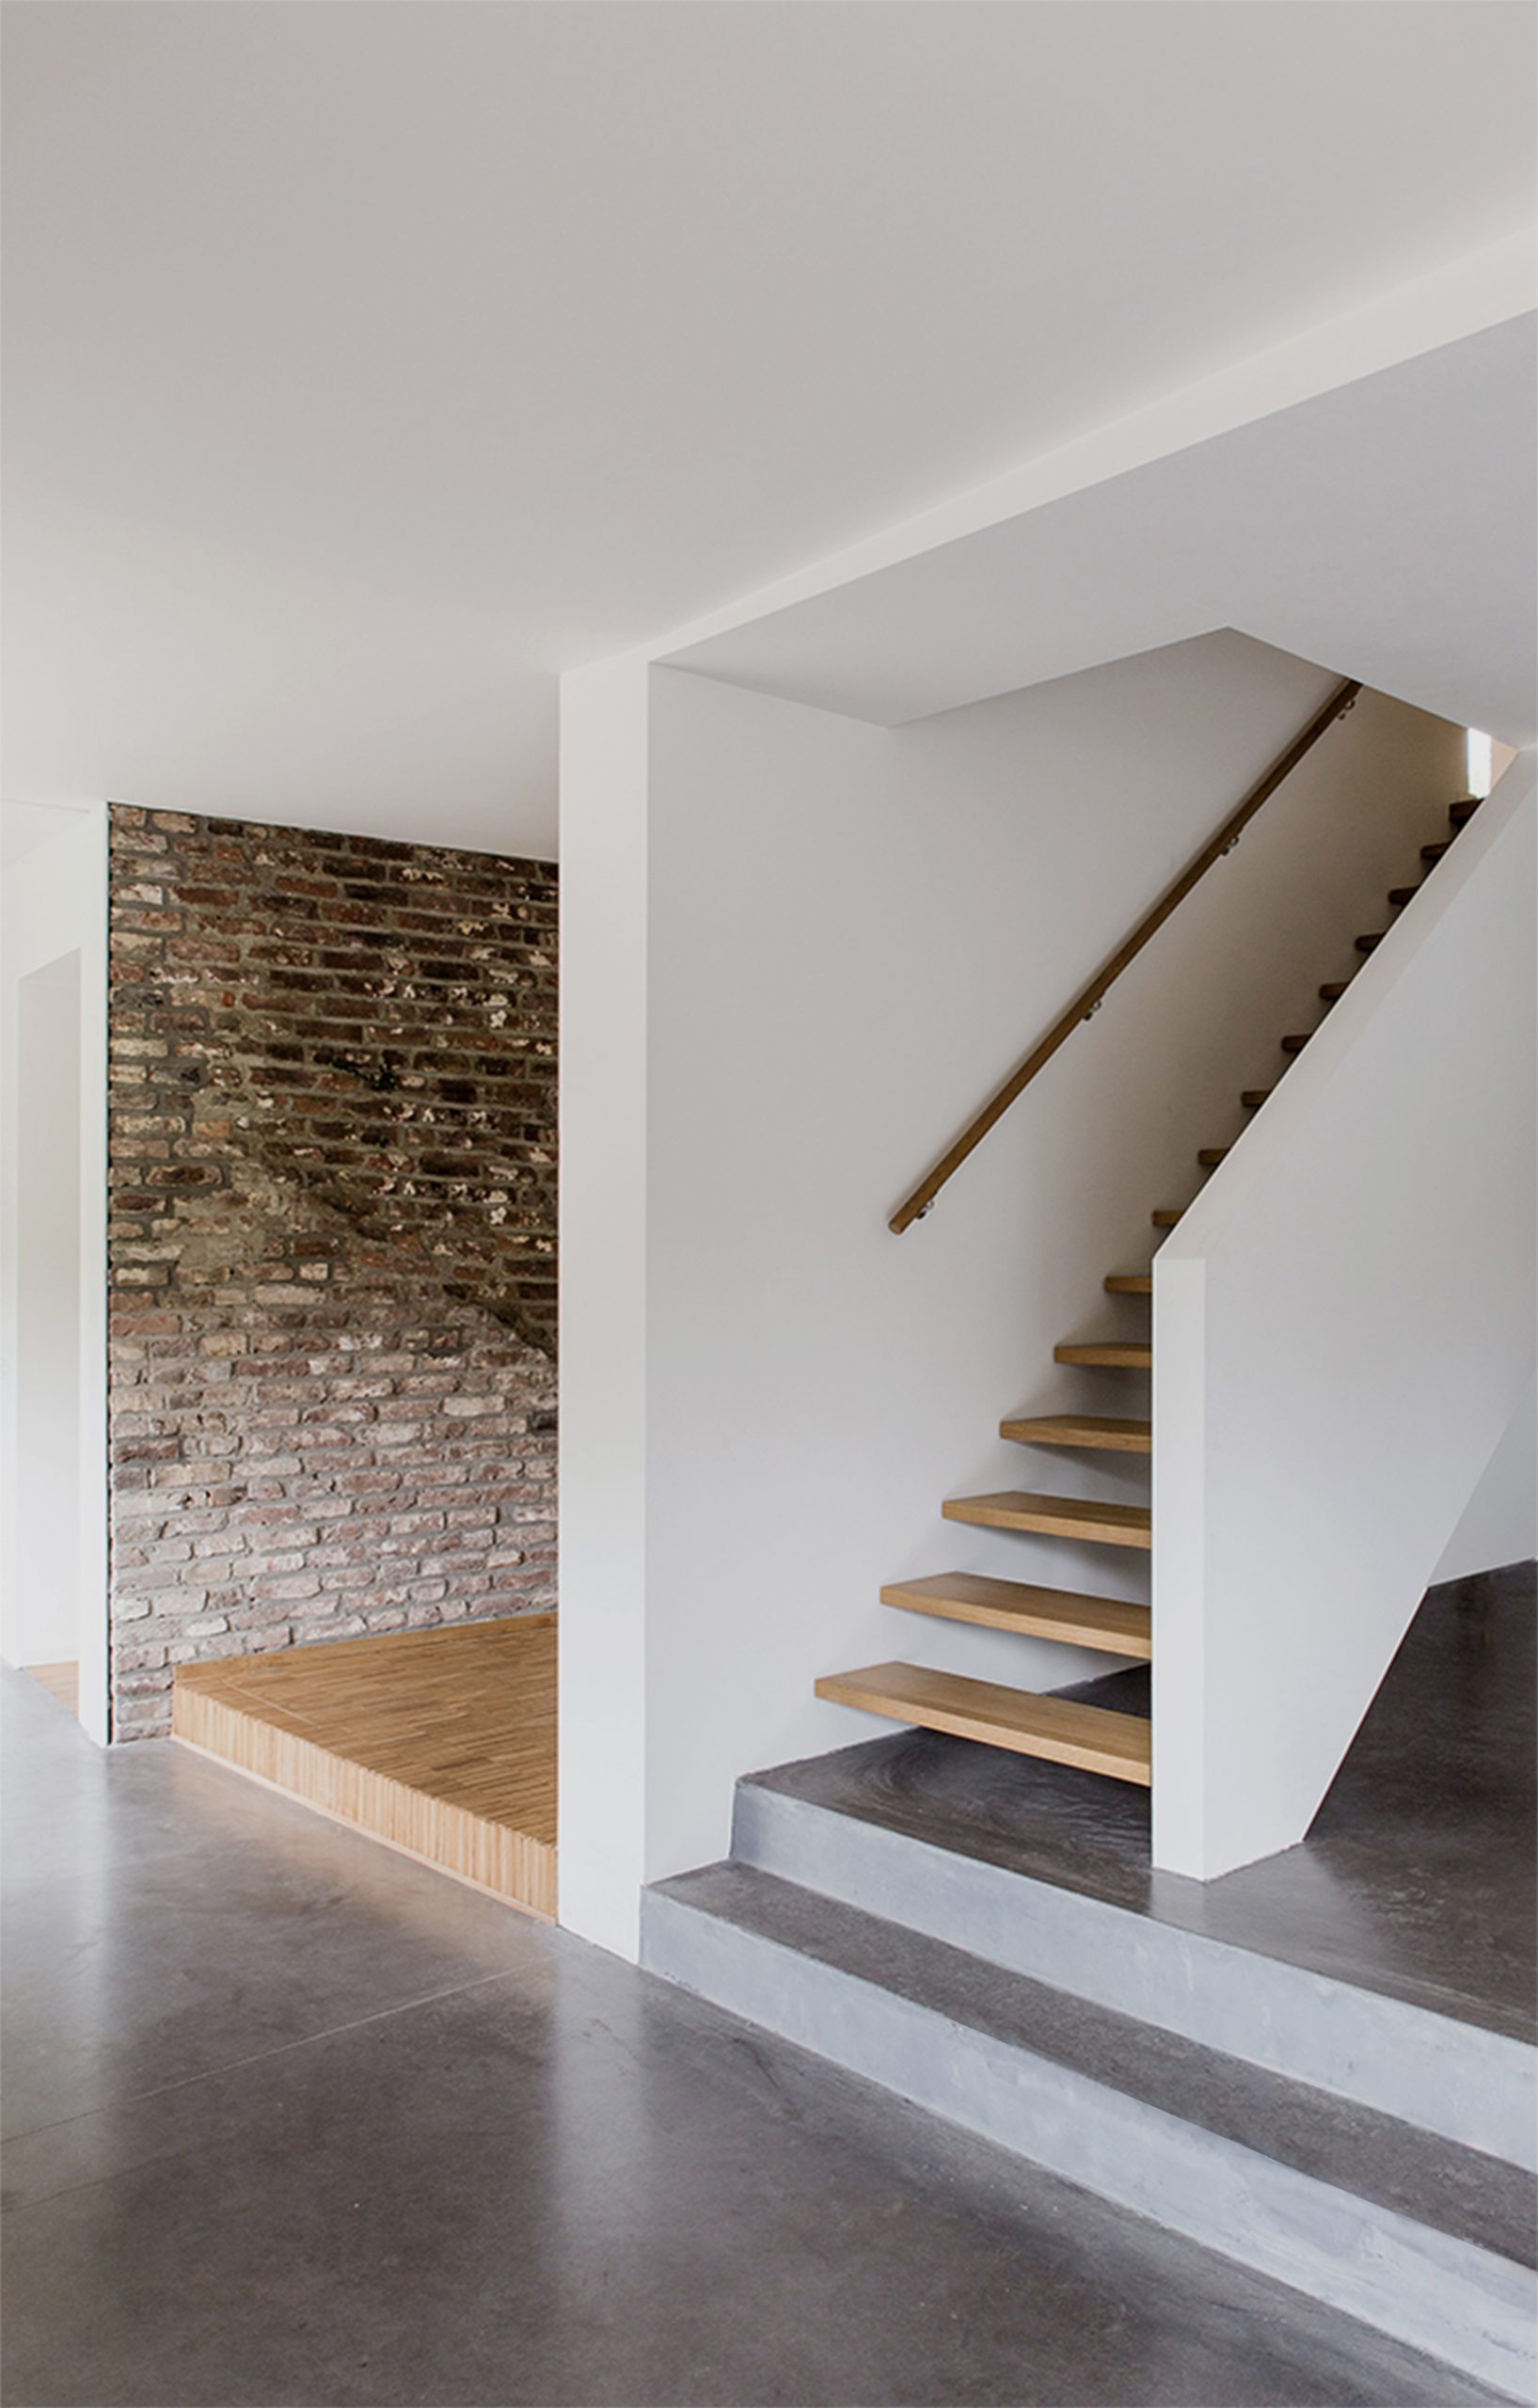 Stair case design with rustic brick wall